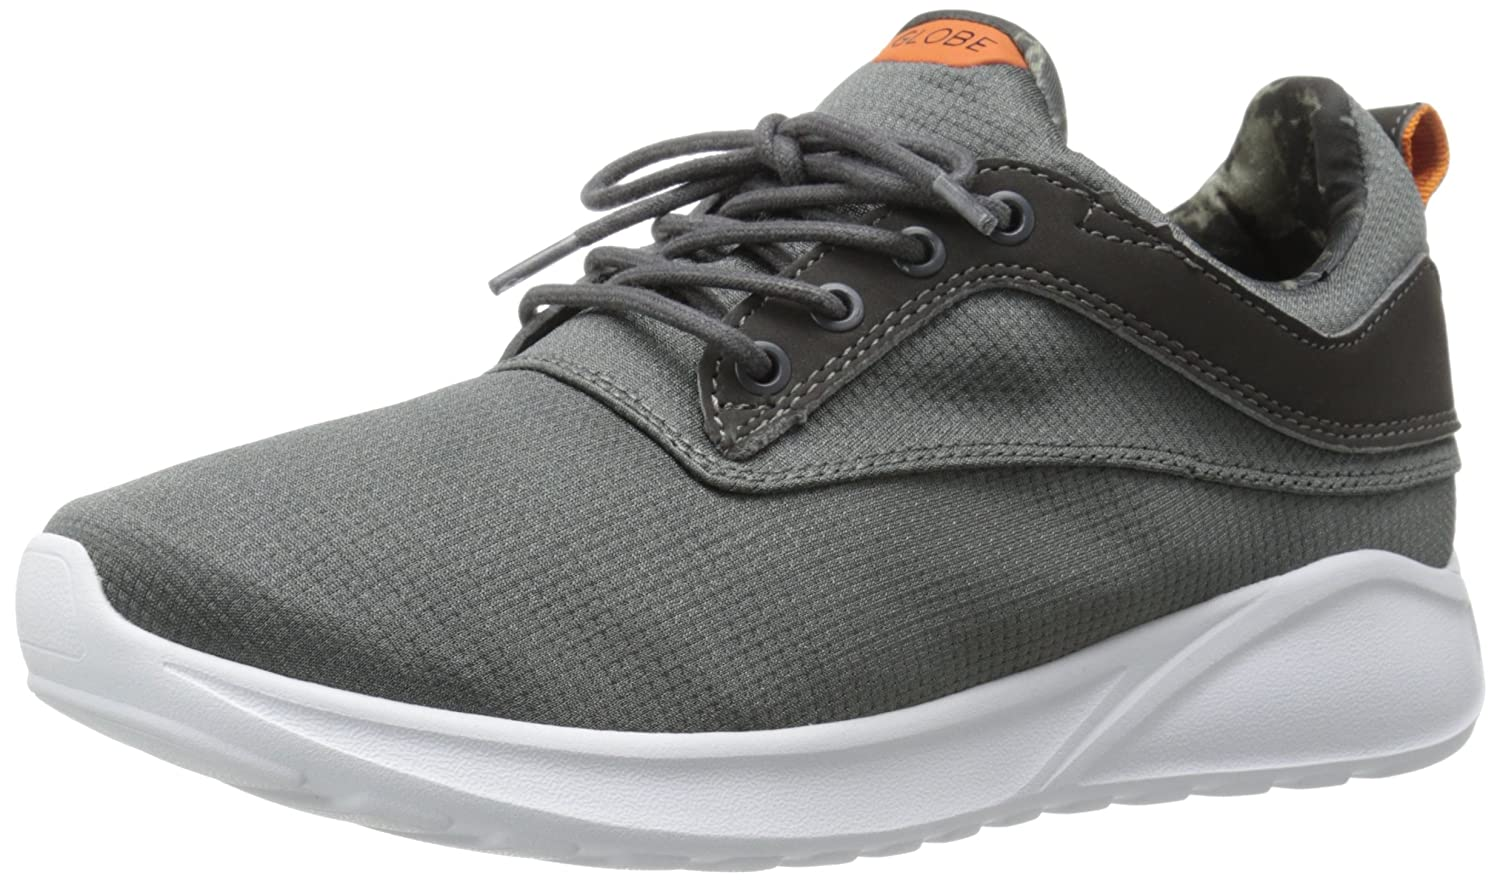 Globe Men's Roam Lyte Training Shoe 10 D(M) US|Charcoal